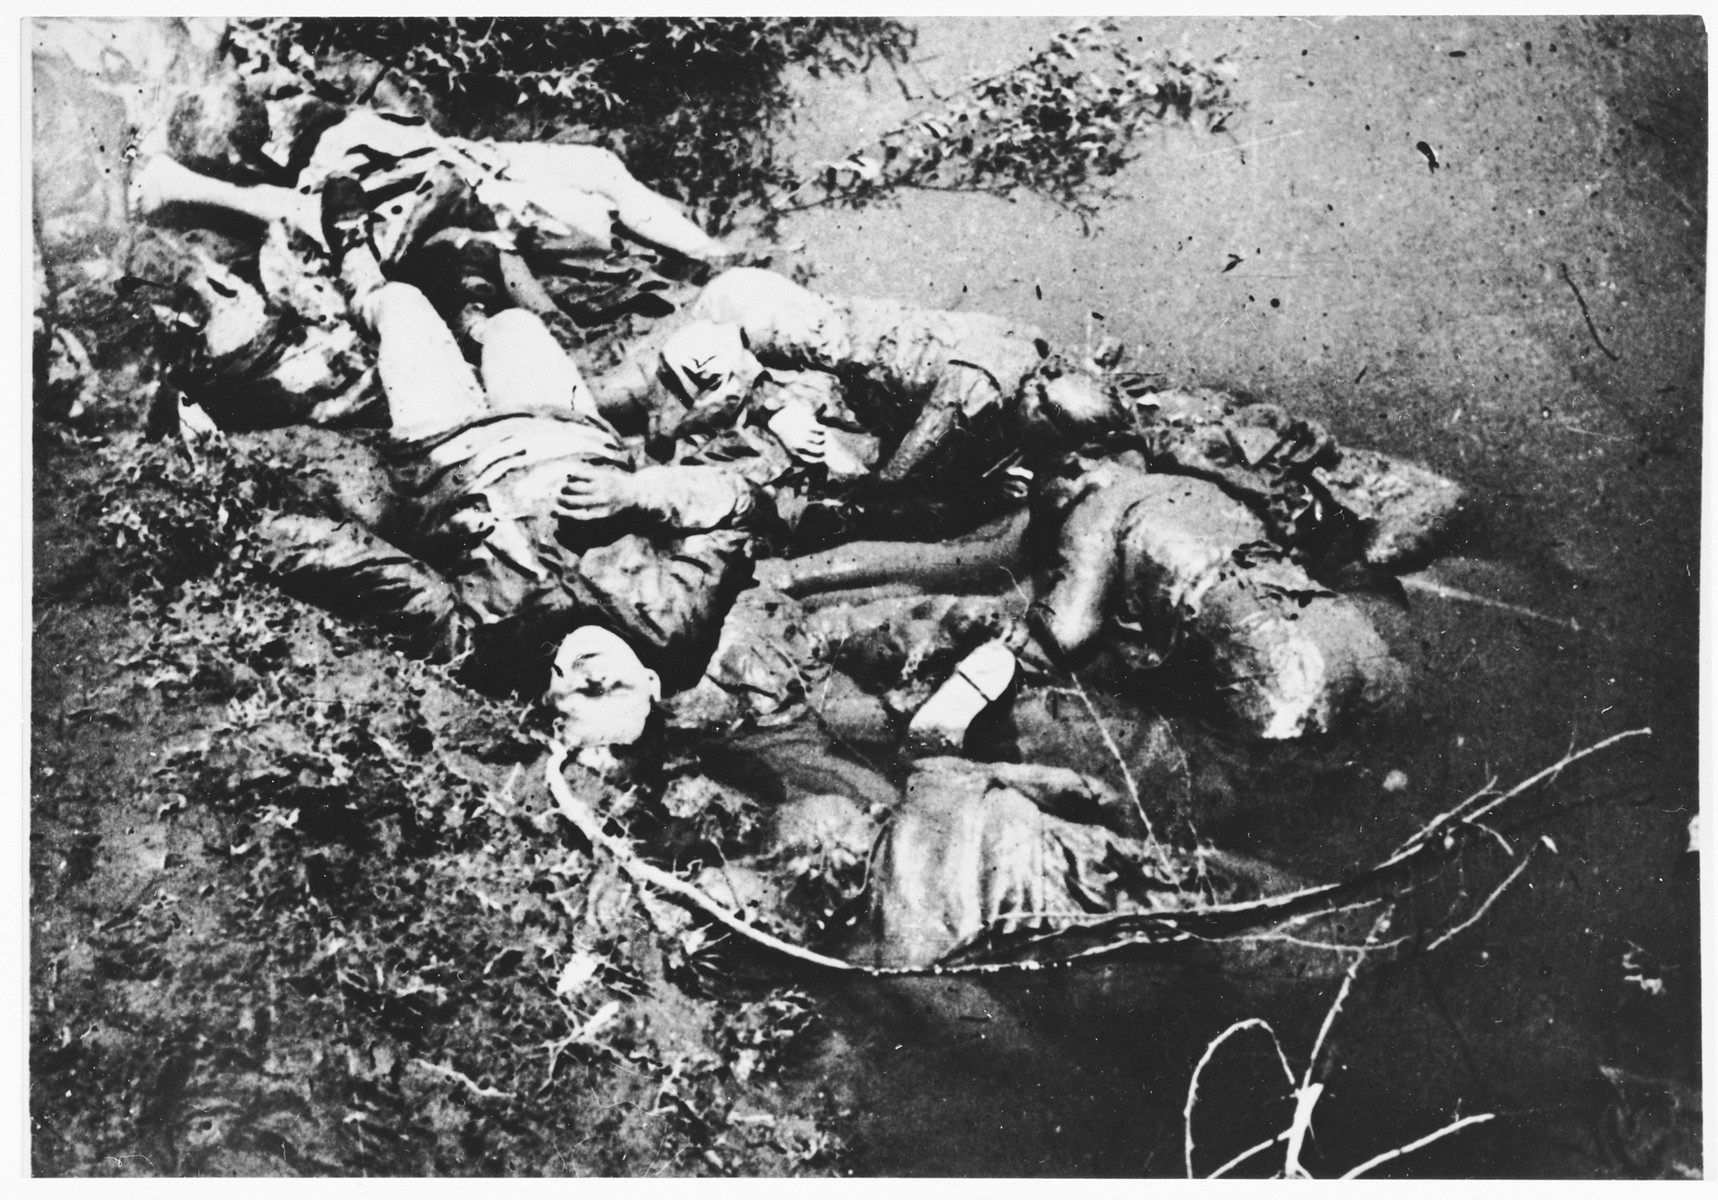 Bodies pulled out from the Sava River near the Stara Gradiska concentration camp.